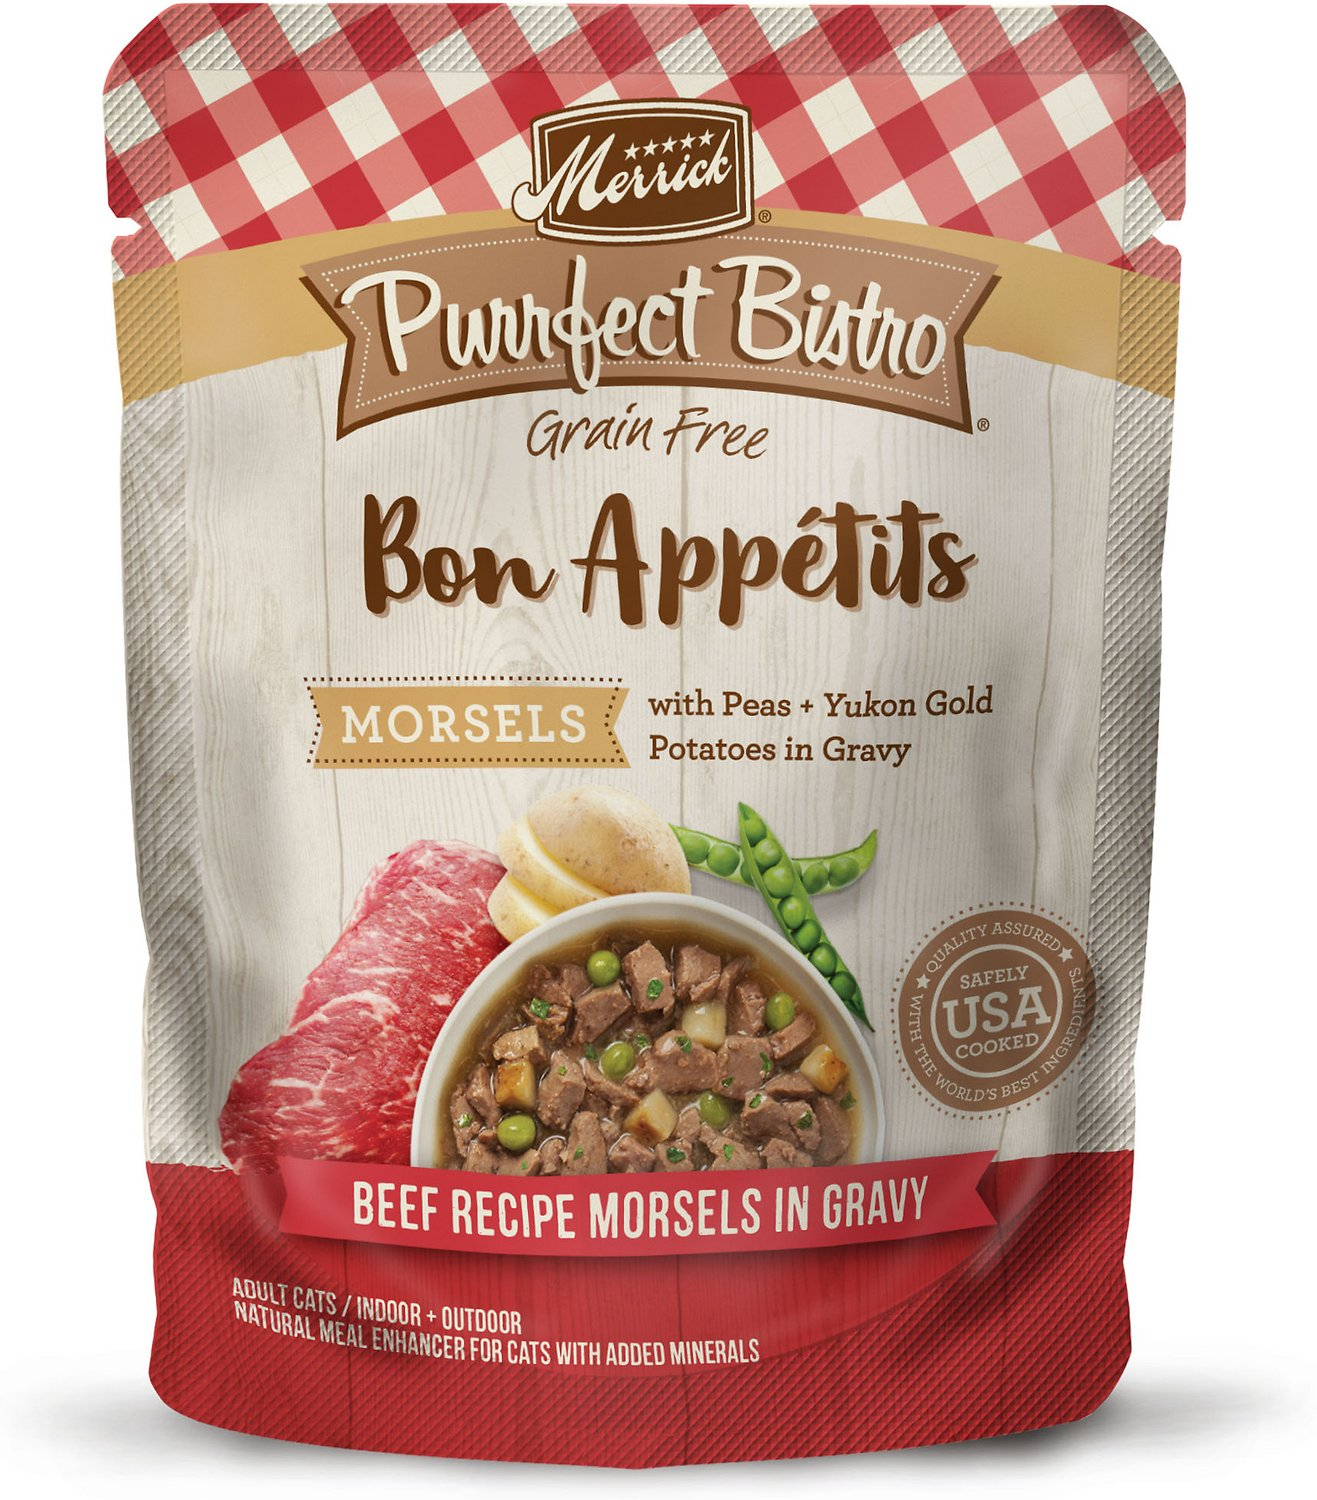 Merrick Purrfect Bistro Bon Appetits Grain-Free Beef Recipe Morsels in Gravy Adult Cat Food Pouches Image